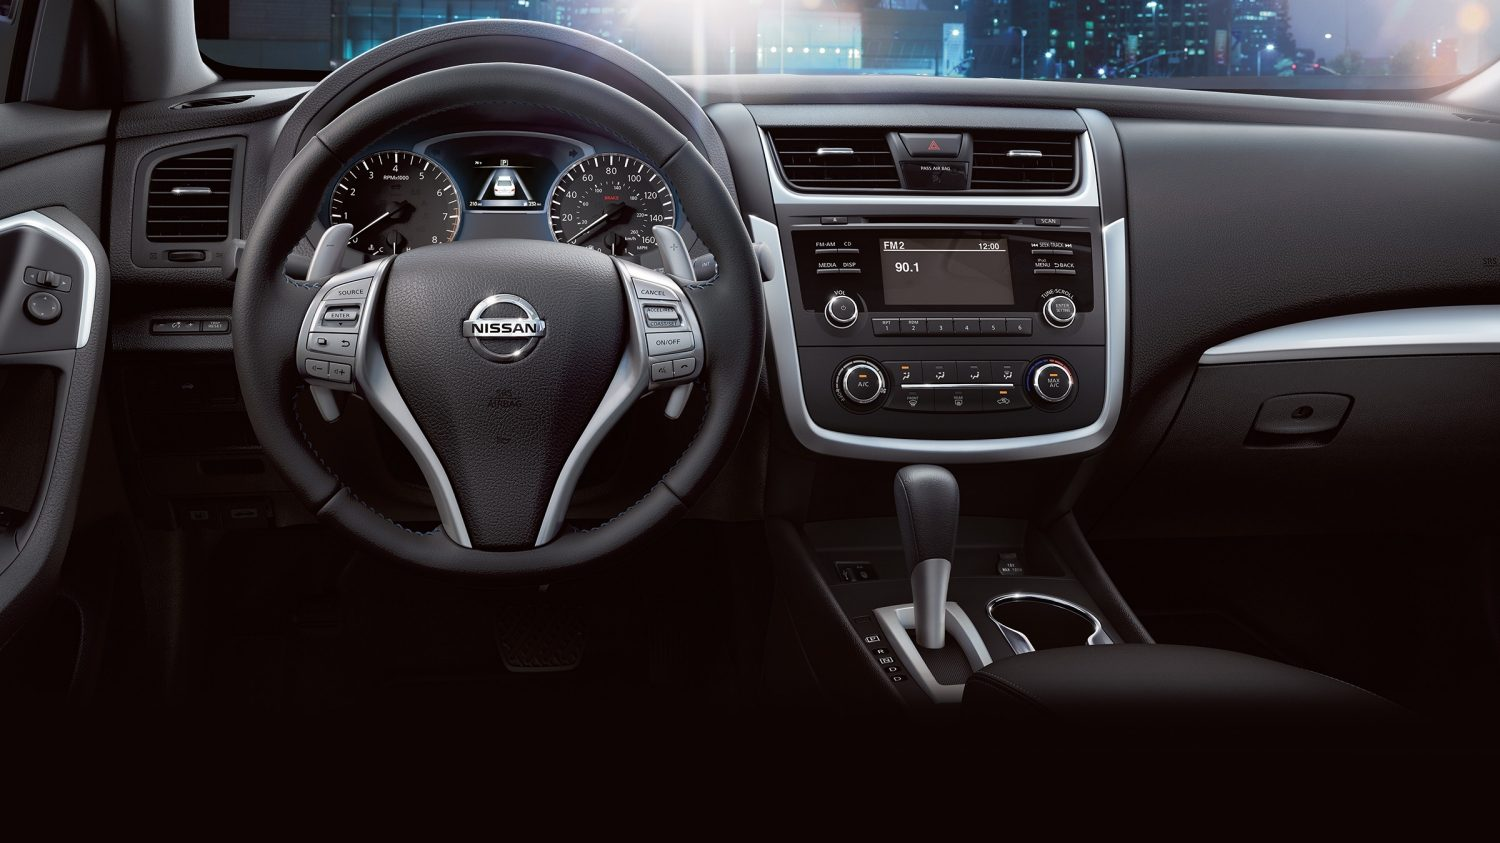 Nissan Altima heated seats and steering wheel